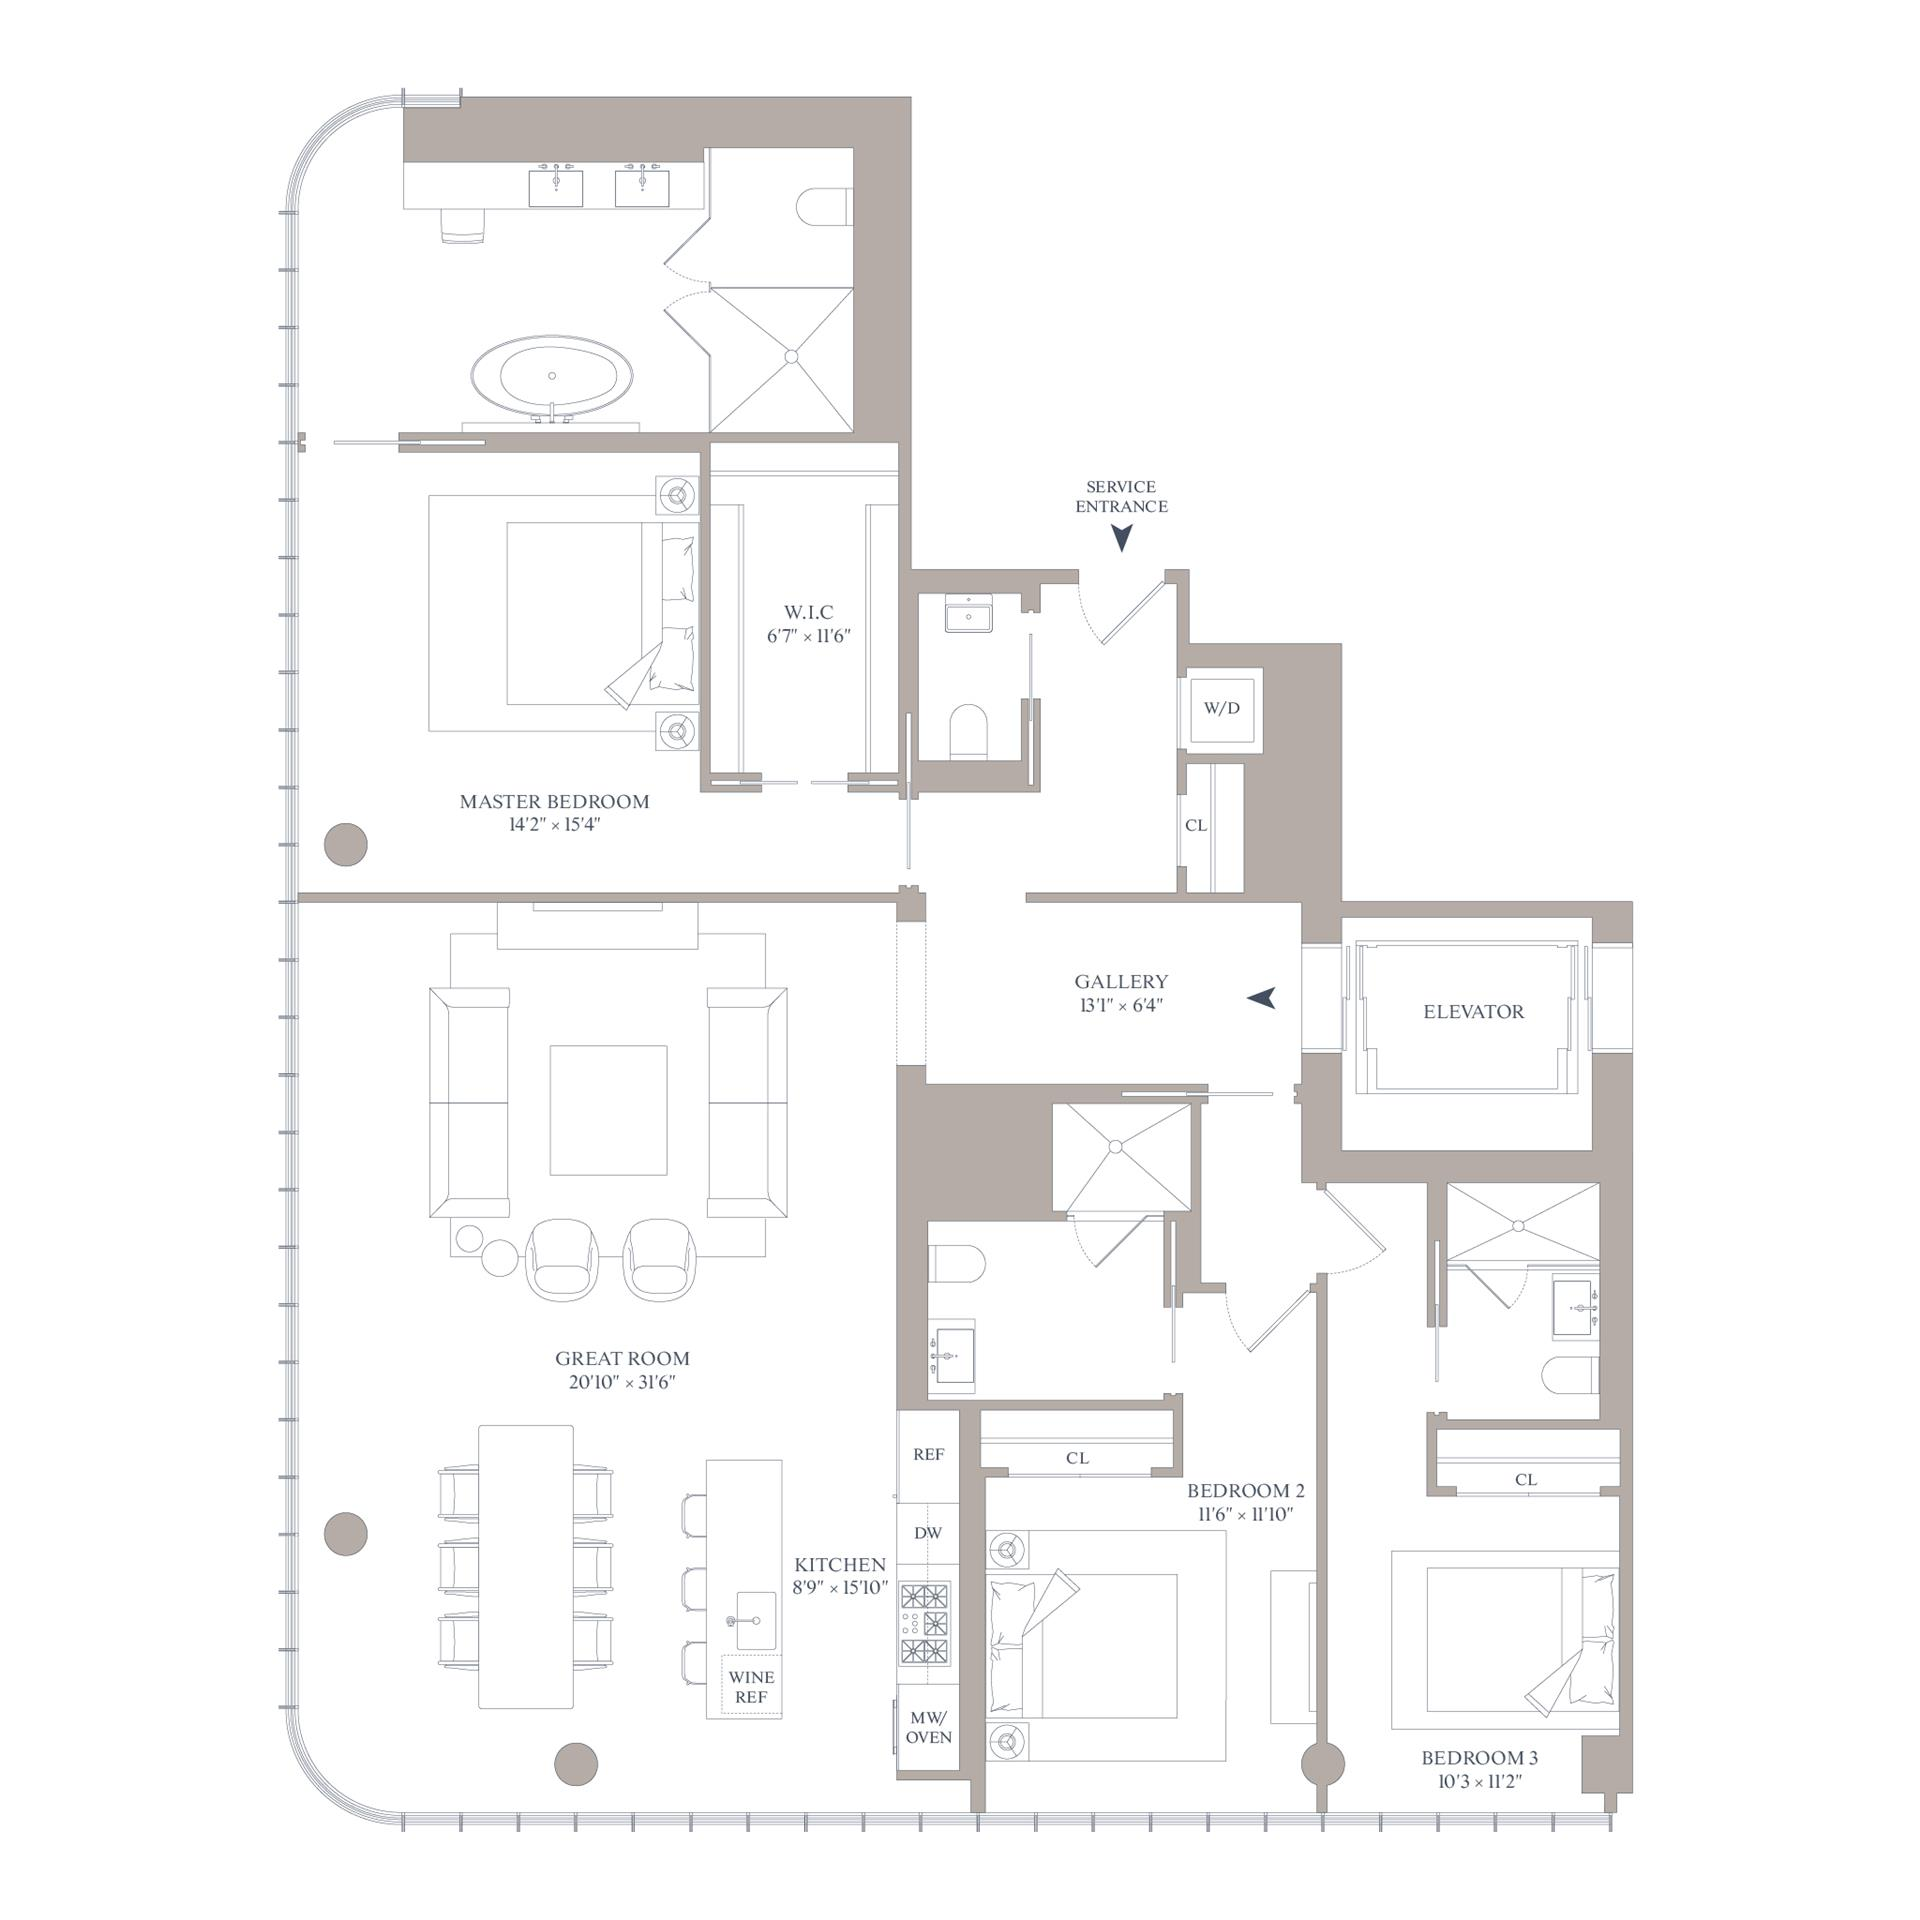 Floor plan of 565 Broome St, S26A - SoHo - Nolita, New York